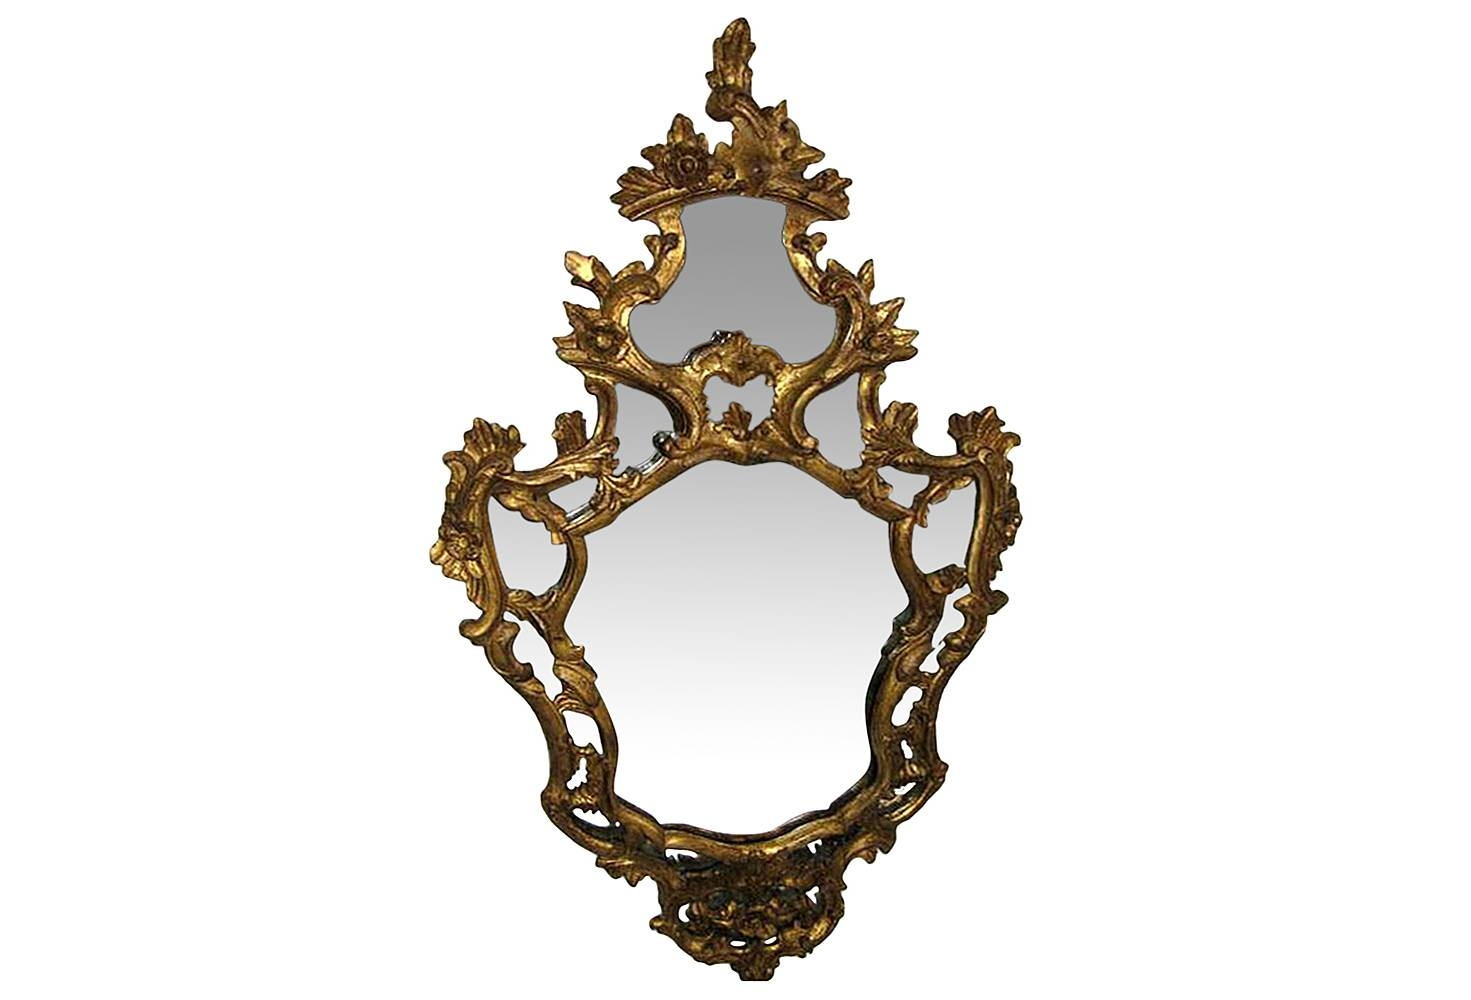 Vintage Mirrors - Antique Mirrors | Omero Home with Gold Rococo Mirrors (Image 25 of 25)